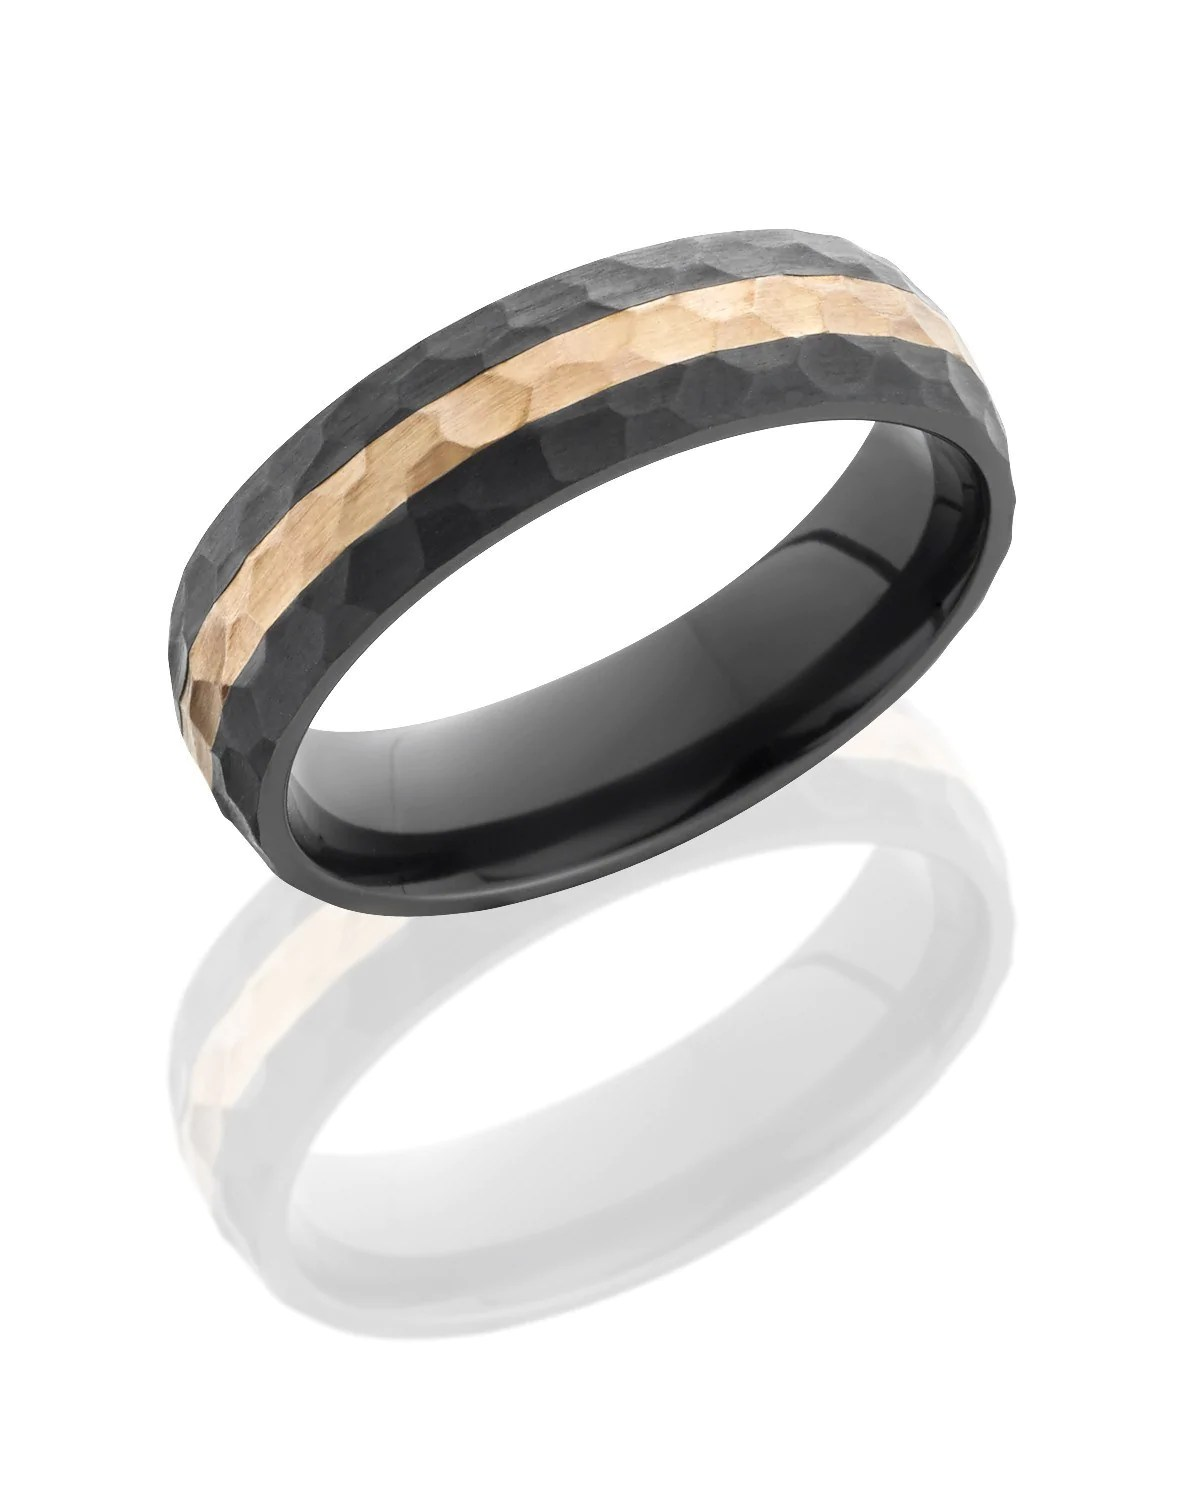 royalty free stock image classic 24ct gold wedding rings image black gold wedding band Classic Black Gold Ruby Diamond Engagement Rings Royalty Free Stock Photography